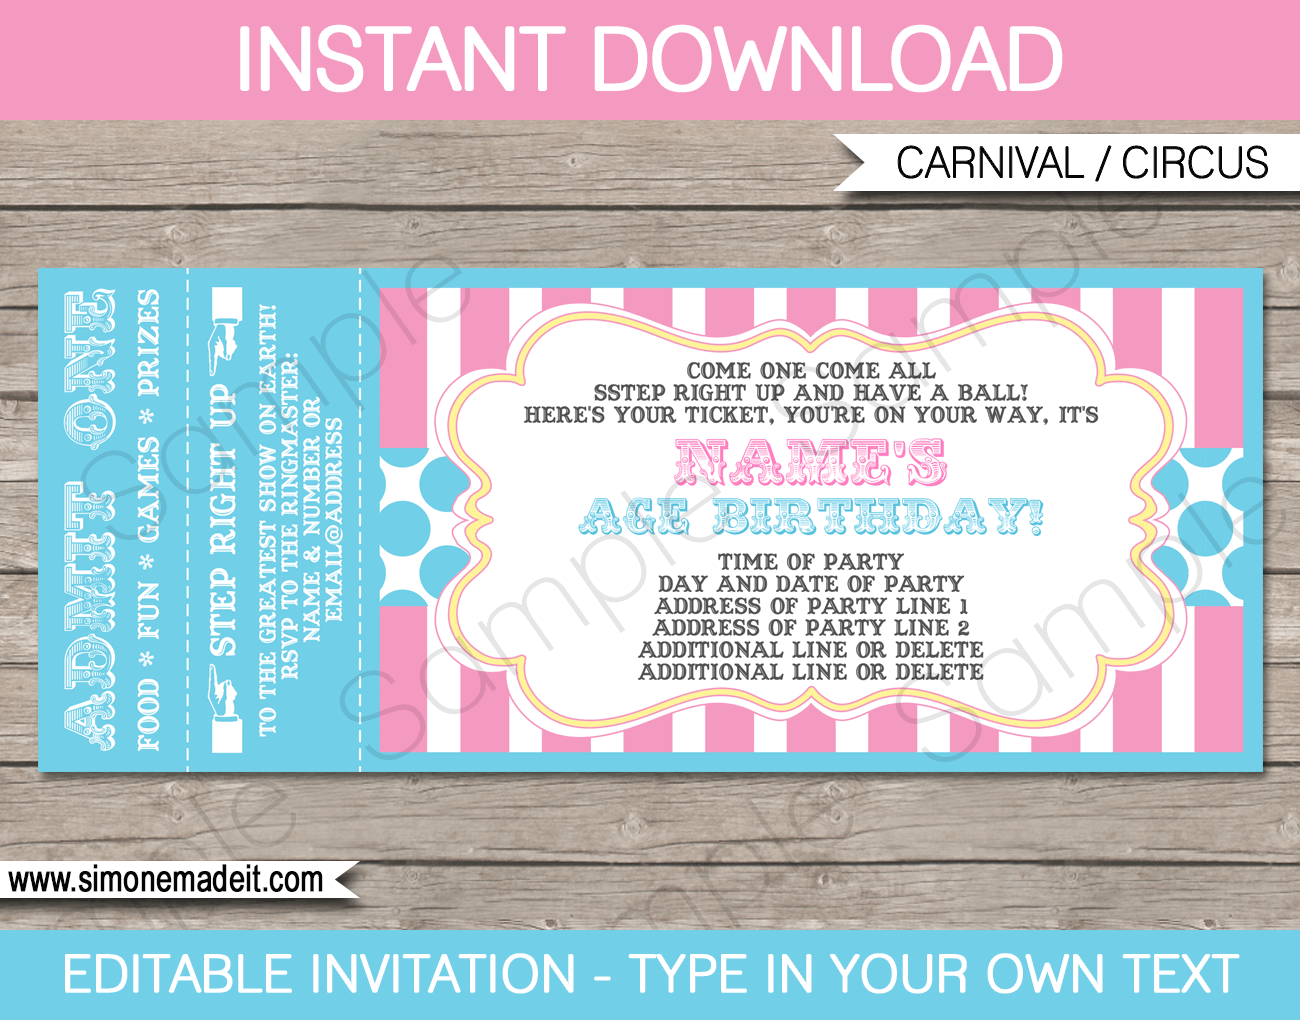 Ticket Template For Mac Insssrenterprisesco Carnival Ticket Invitation  Template Editable And Printable Pink Aqua 1 Ticket  Concert Ticket Template Free